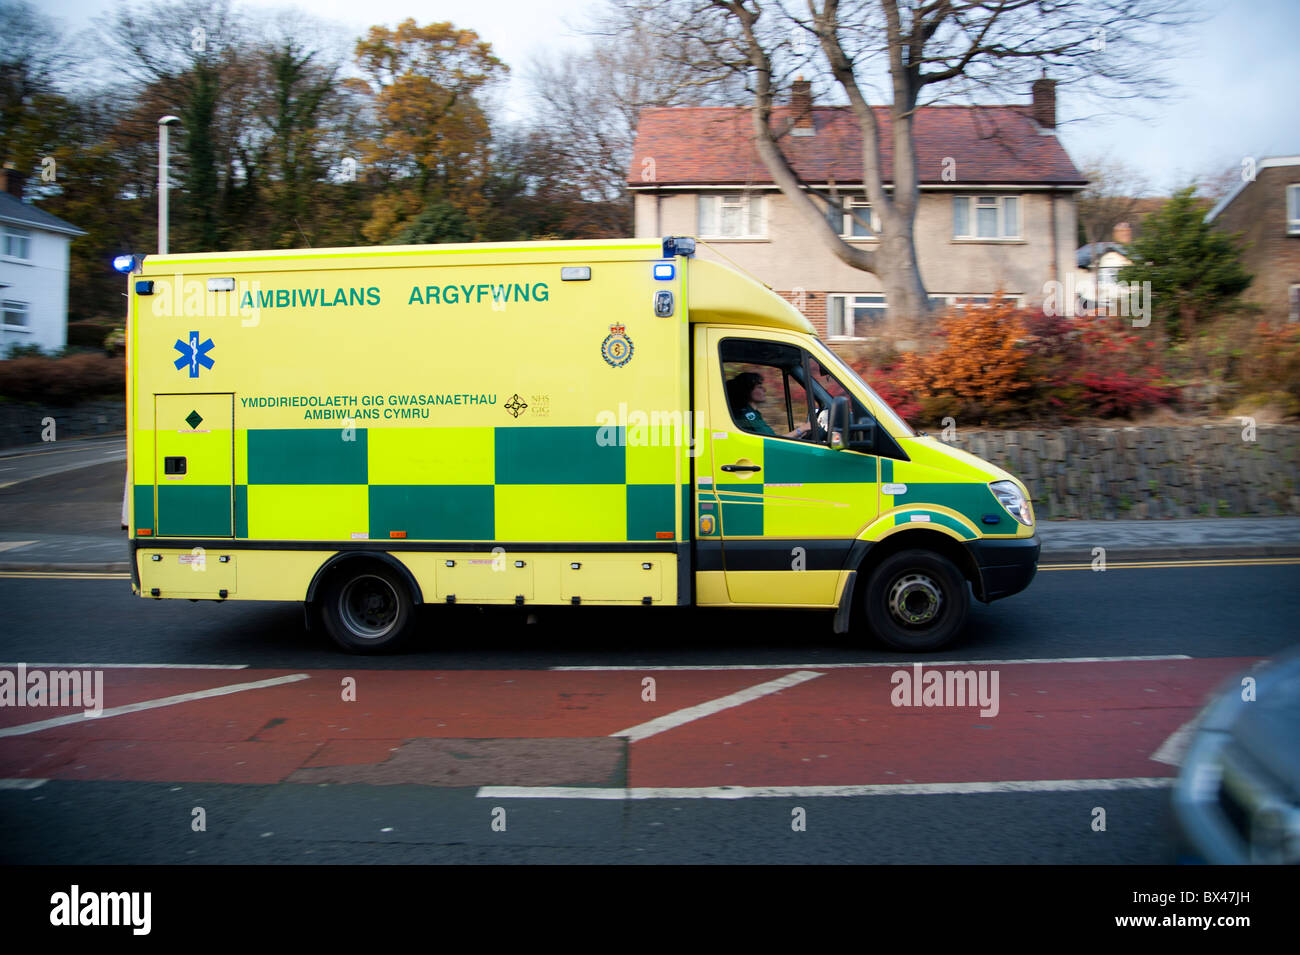 An ambulance responding to a 999 emergency call, UK - Stock Image